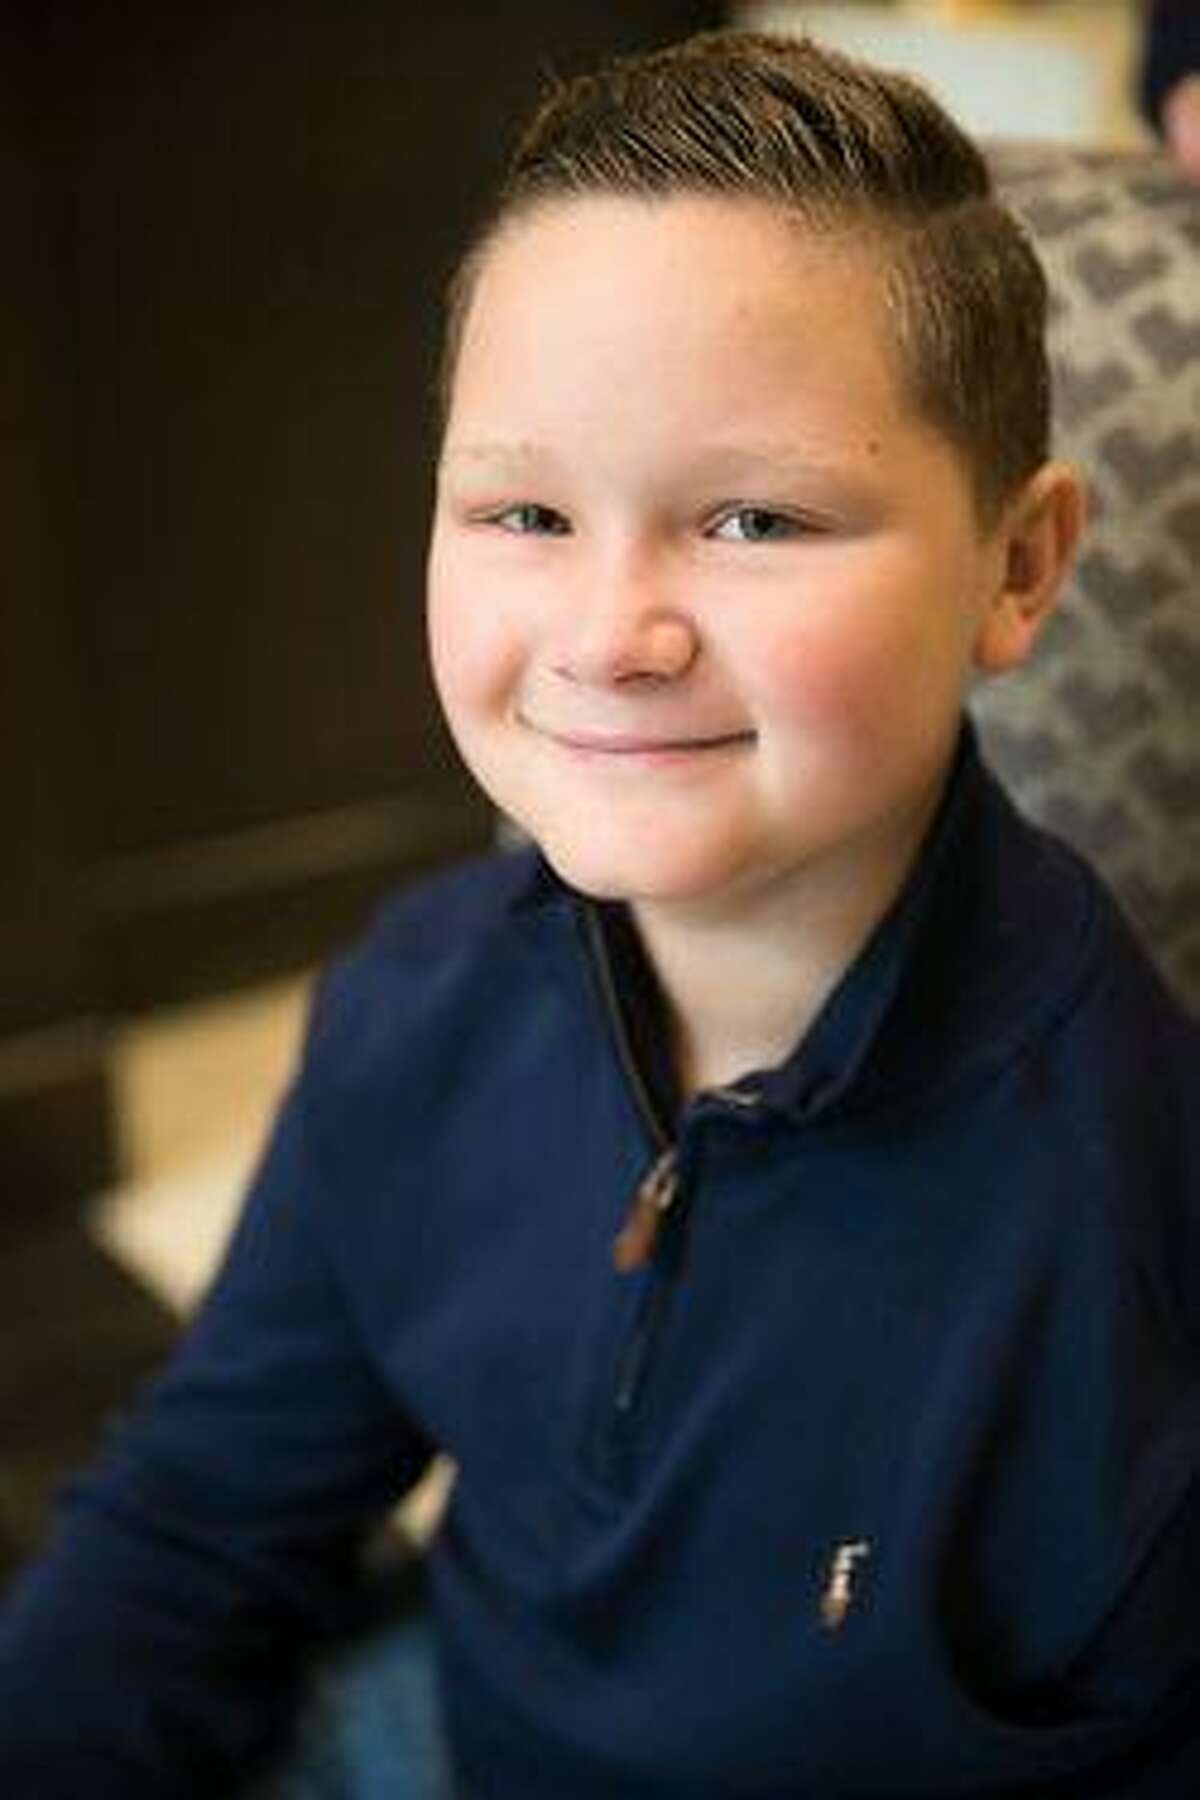 Damon E. Billeck, 13, passed away April 3, from his battle with bone cancer.